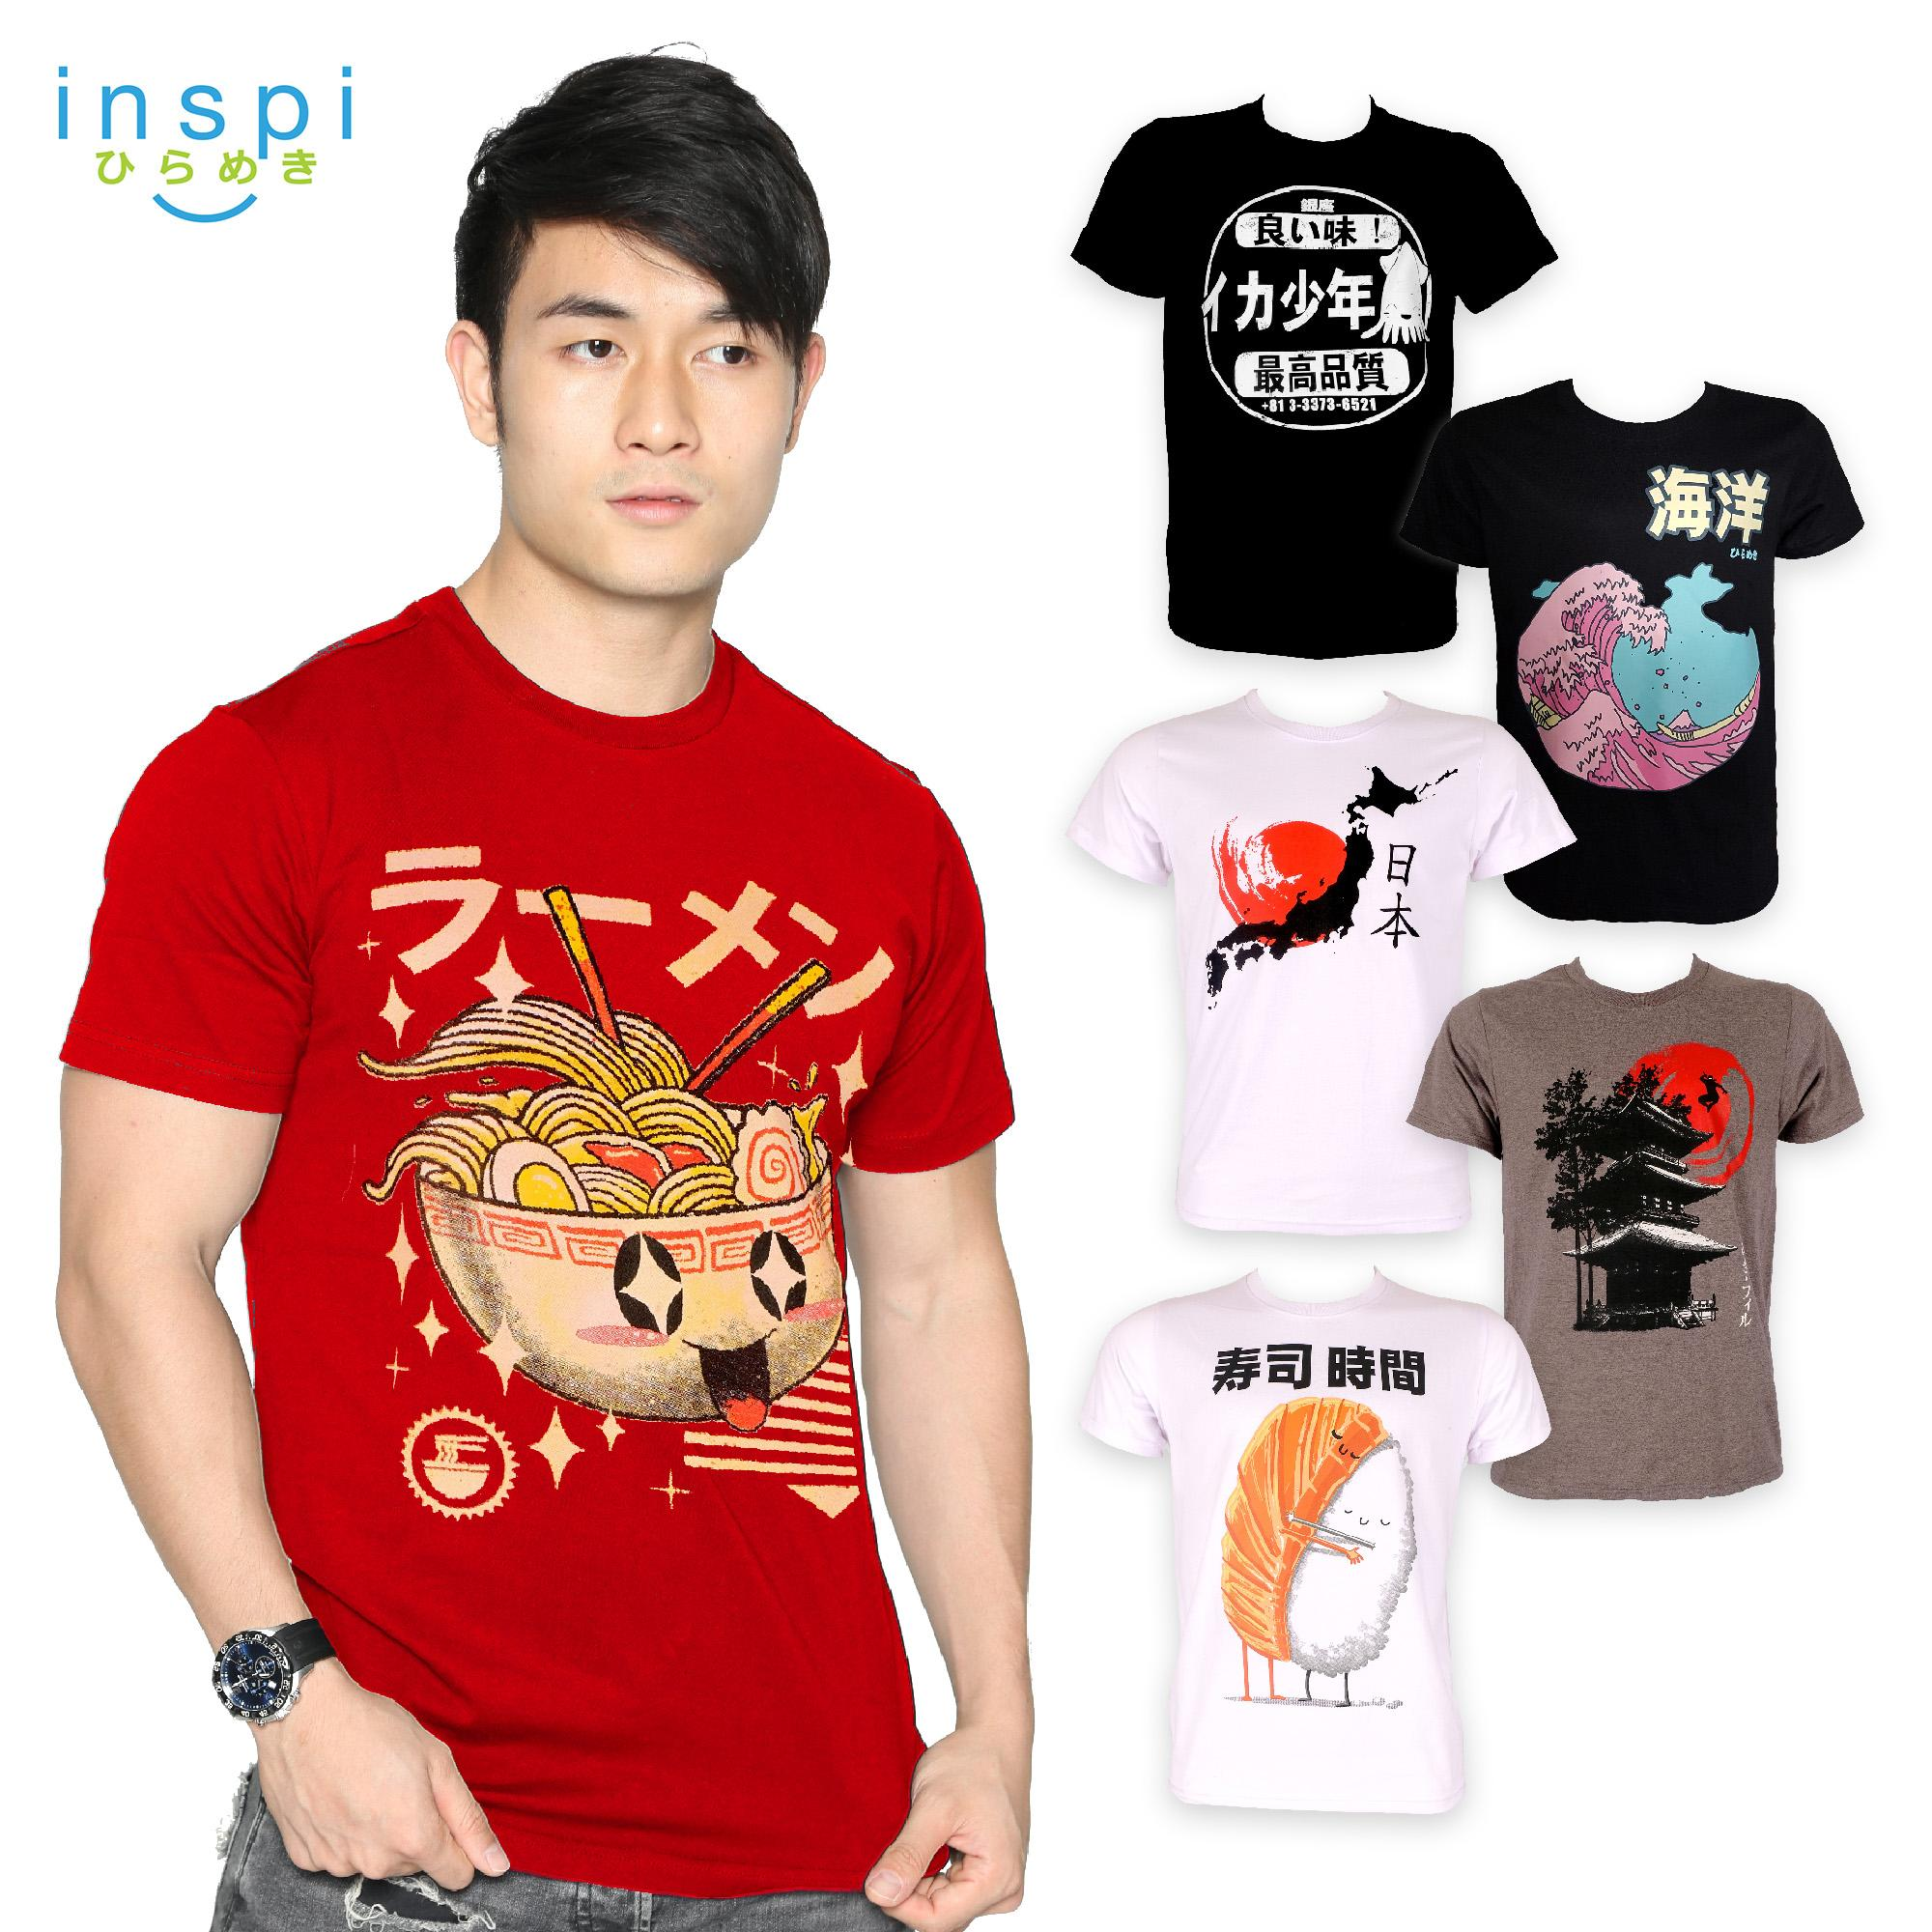 Inspi Tees Nippon Collection Tshirt Printed Graphic Tee Mens T Shirt Shirts For Men Tshirts Sale By Inspi.